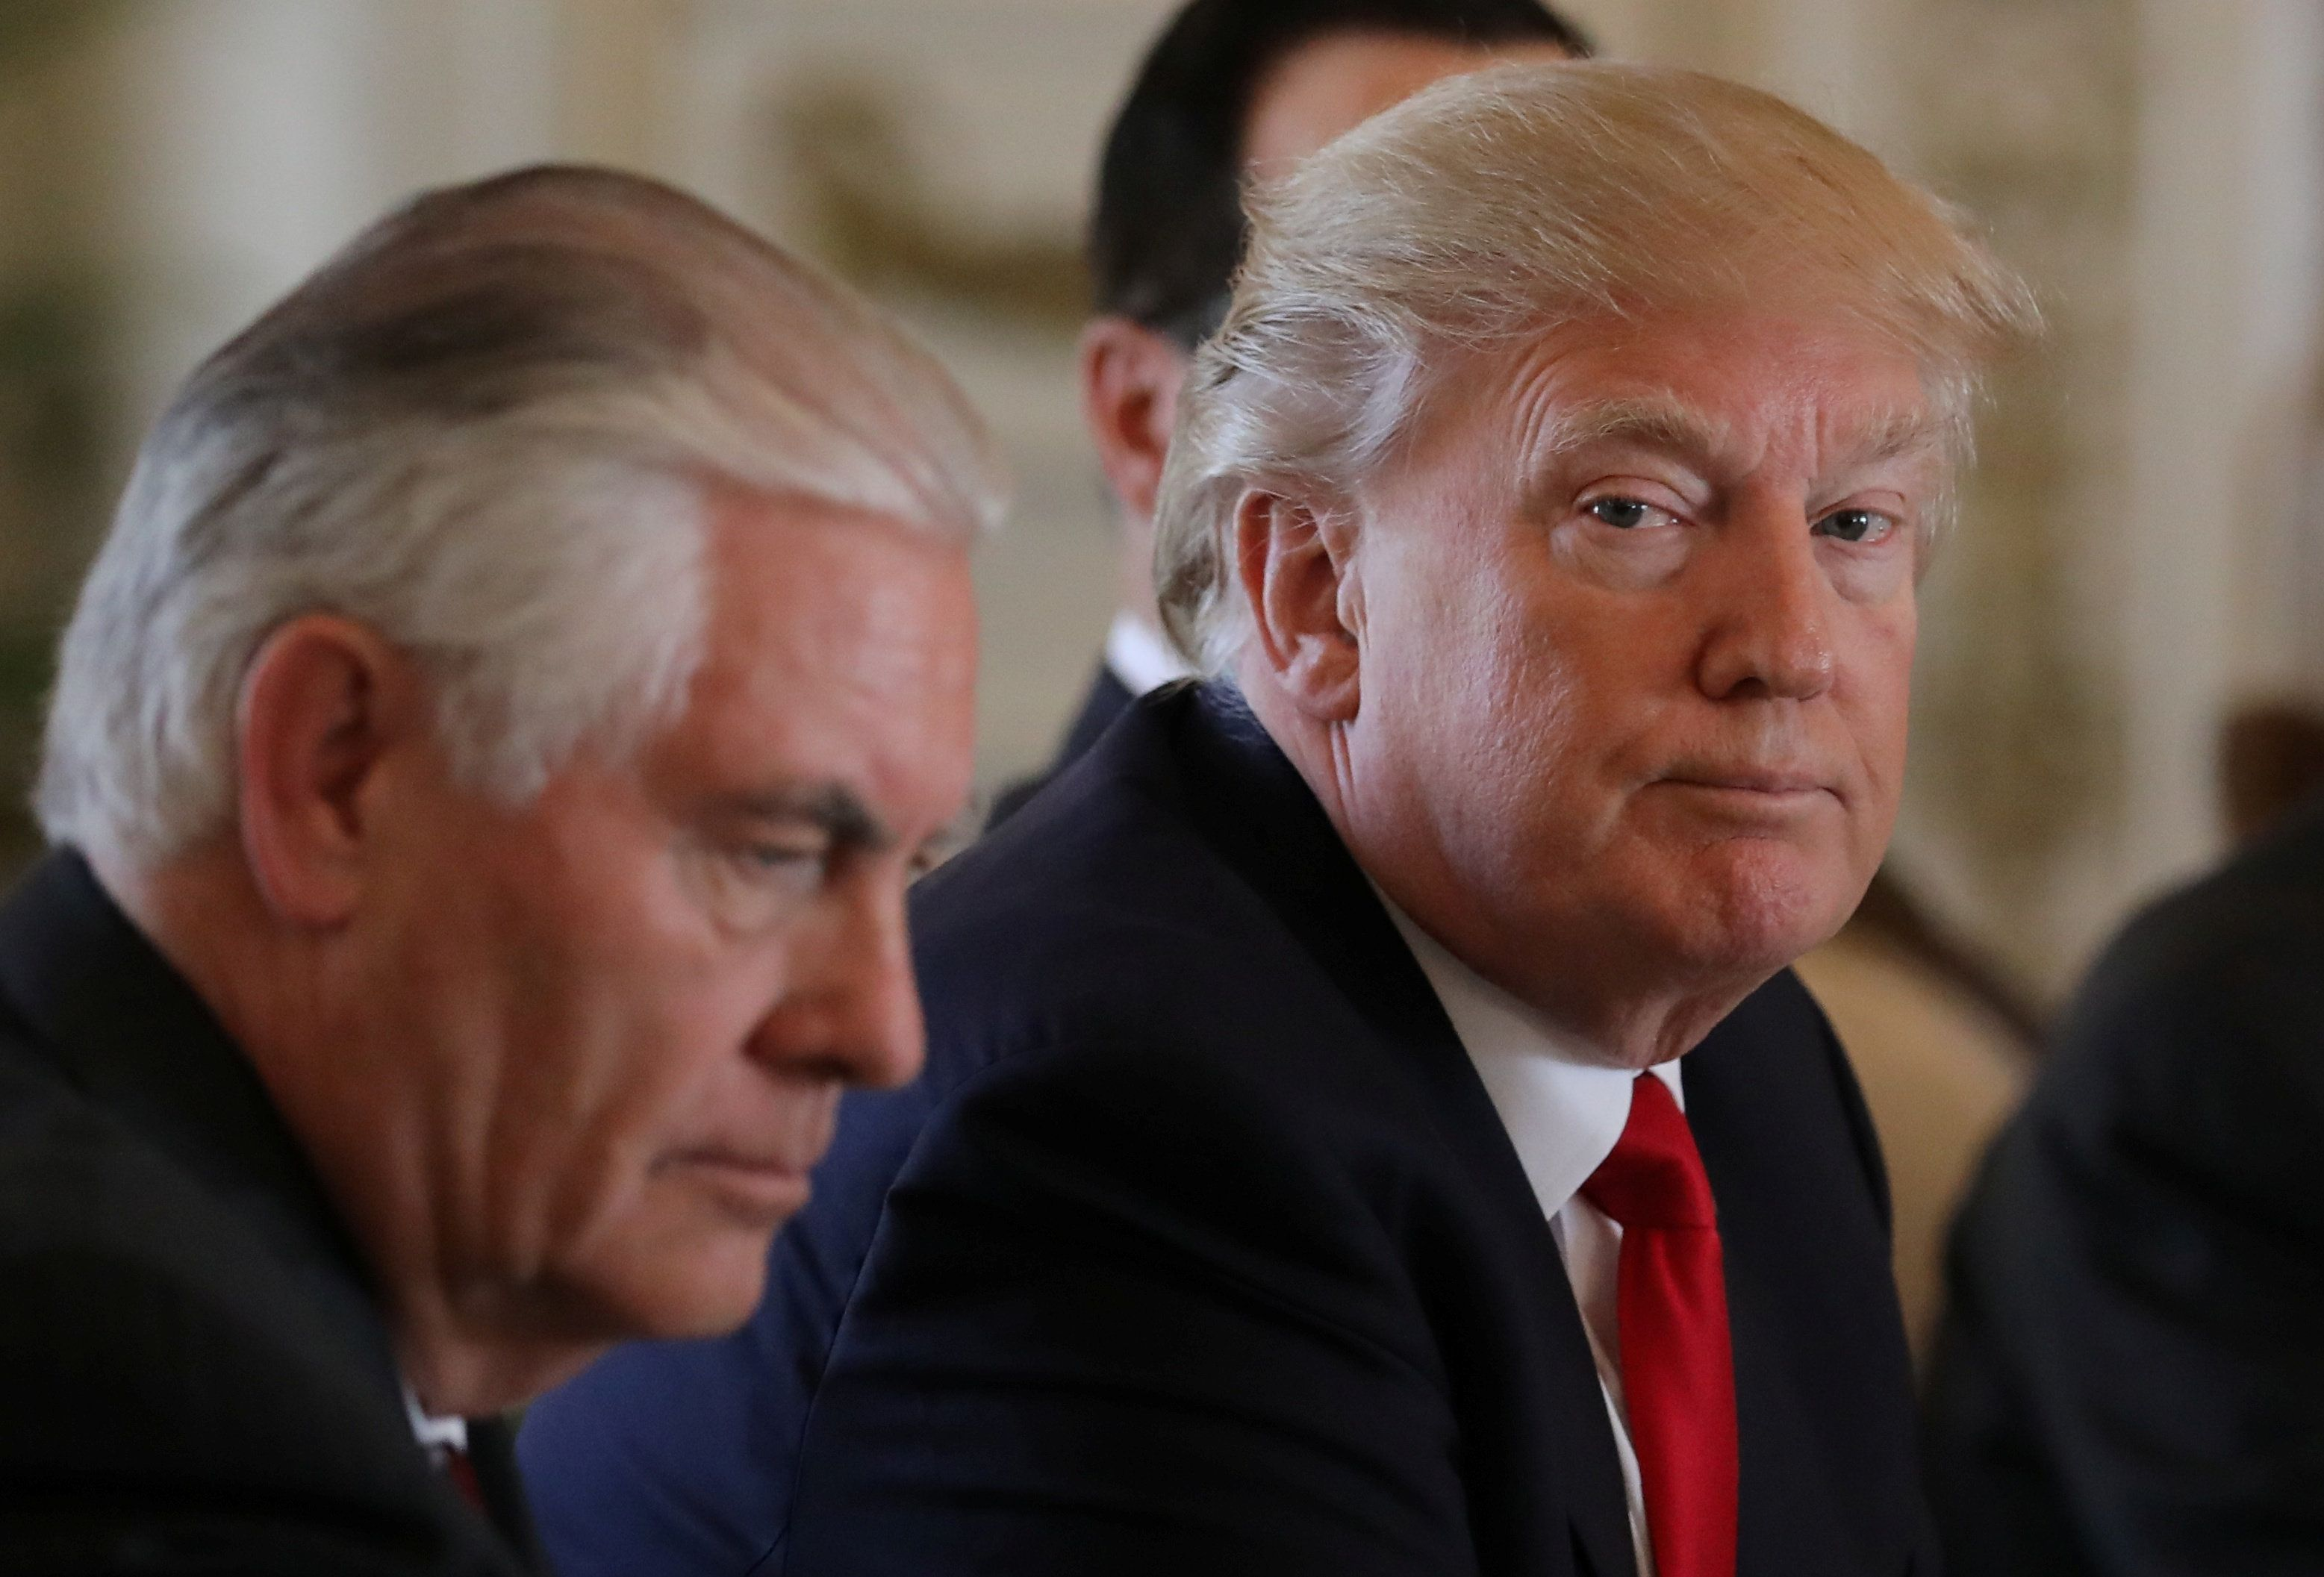 Donald Trump sits next to Secretary of State Rex Tillerson during a bilateral meeting with Chinas President Xi Jinping at Trumps Mar-a-Lago resort in Palm Beach Florida in April